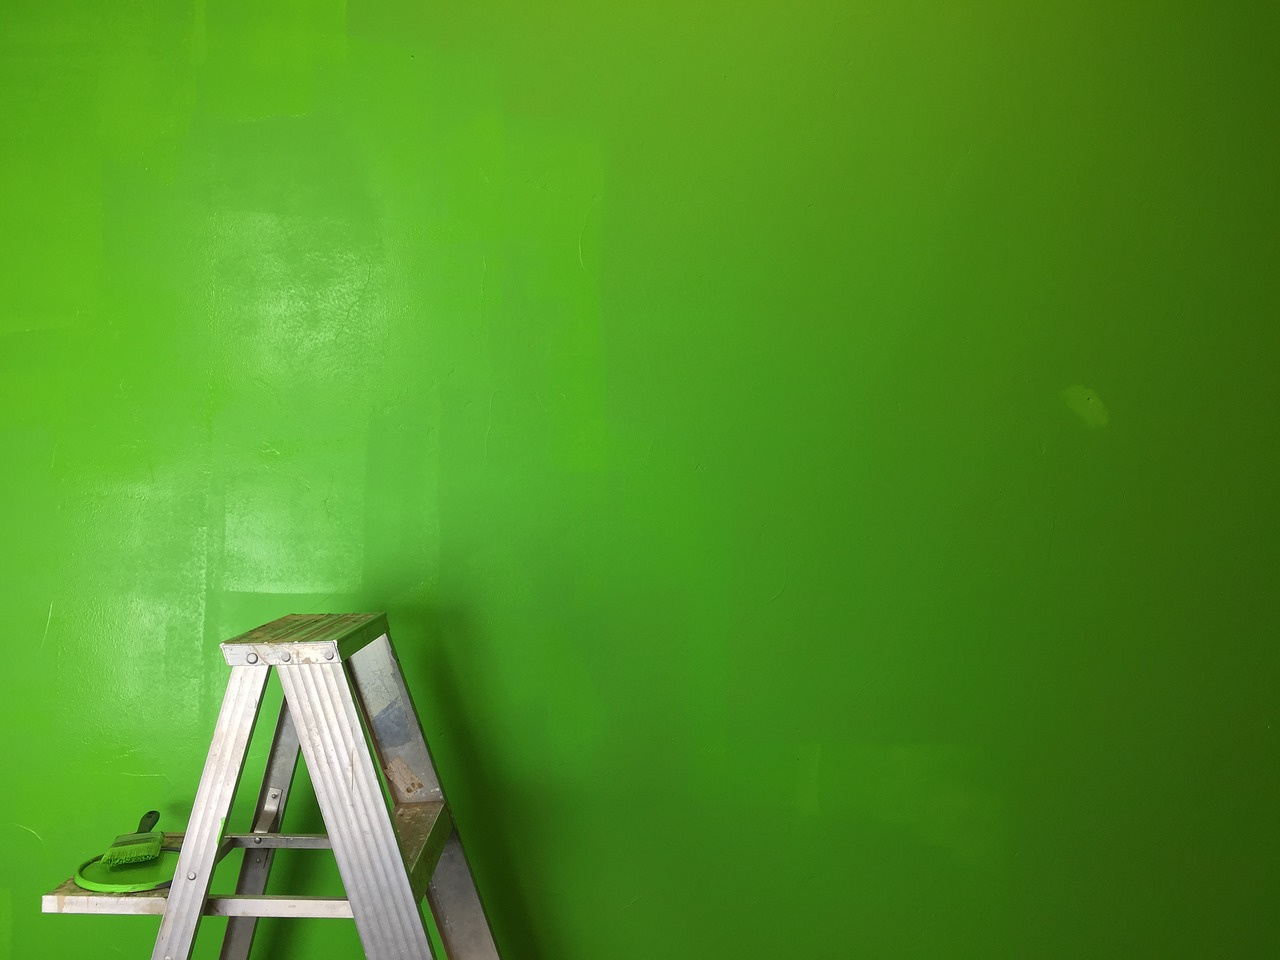 ladder green wall